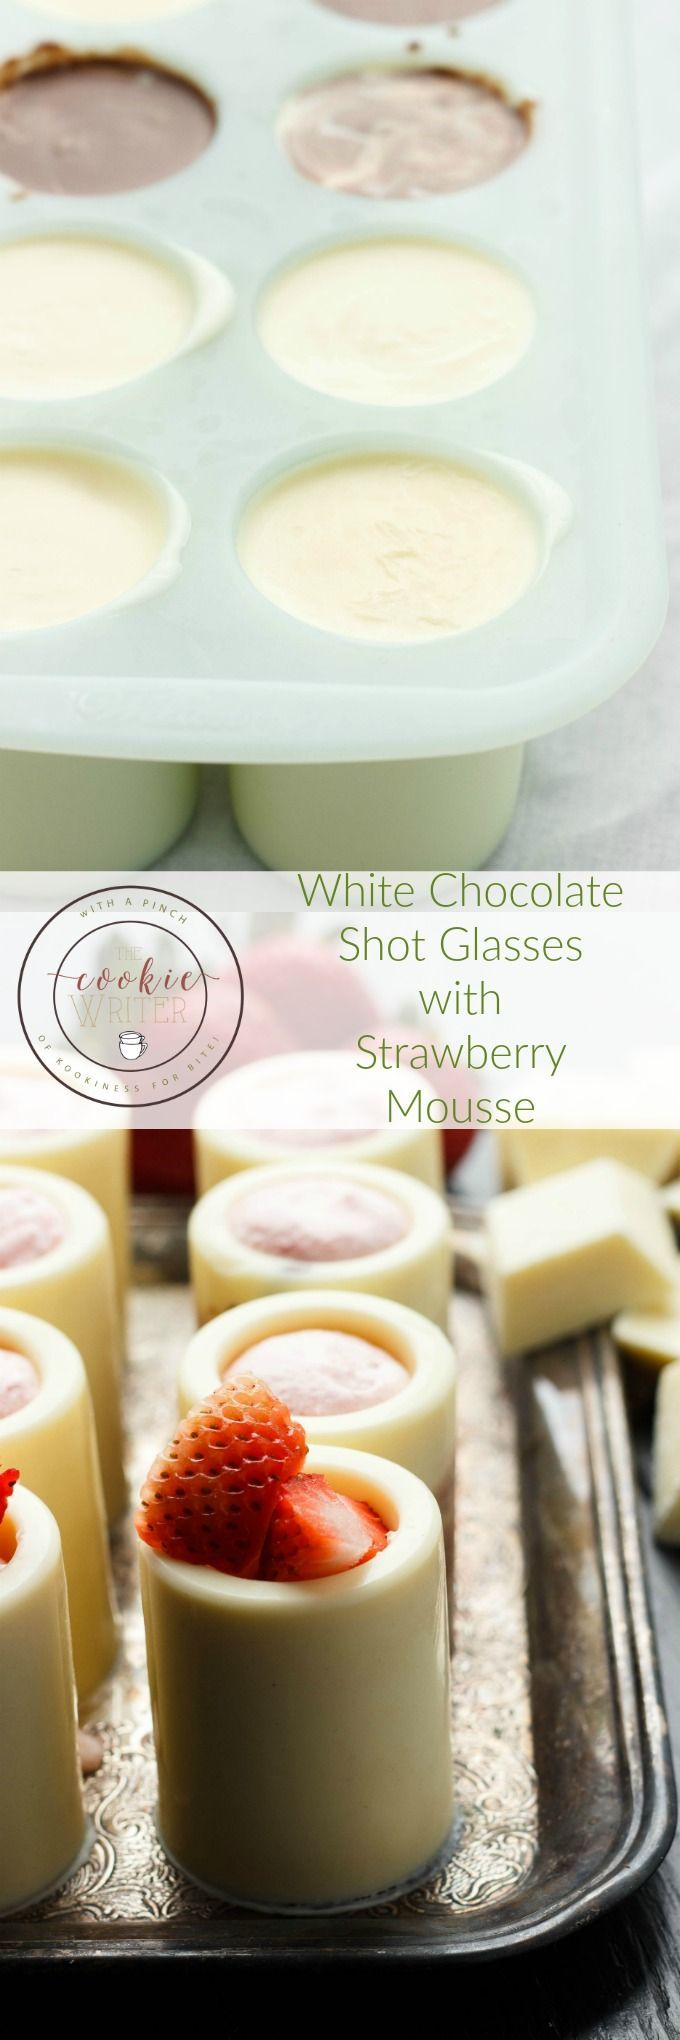 awesome White Chocolate Shot Glasses with Strawberry Mousse - The Cookie Writer